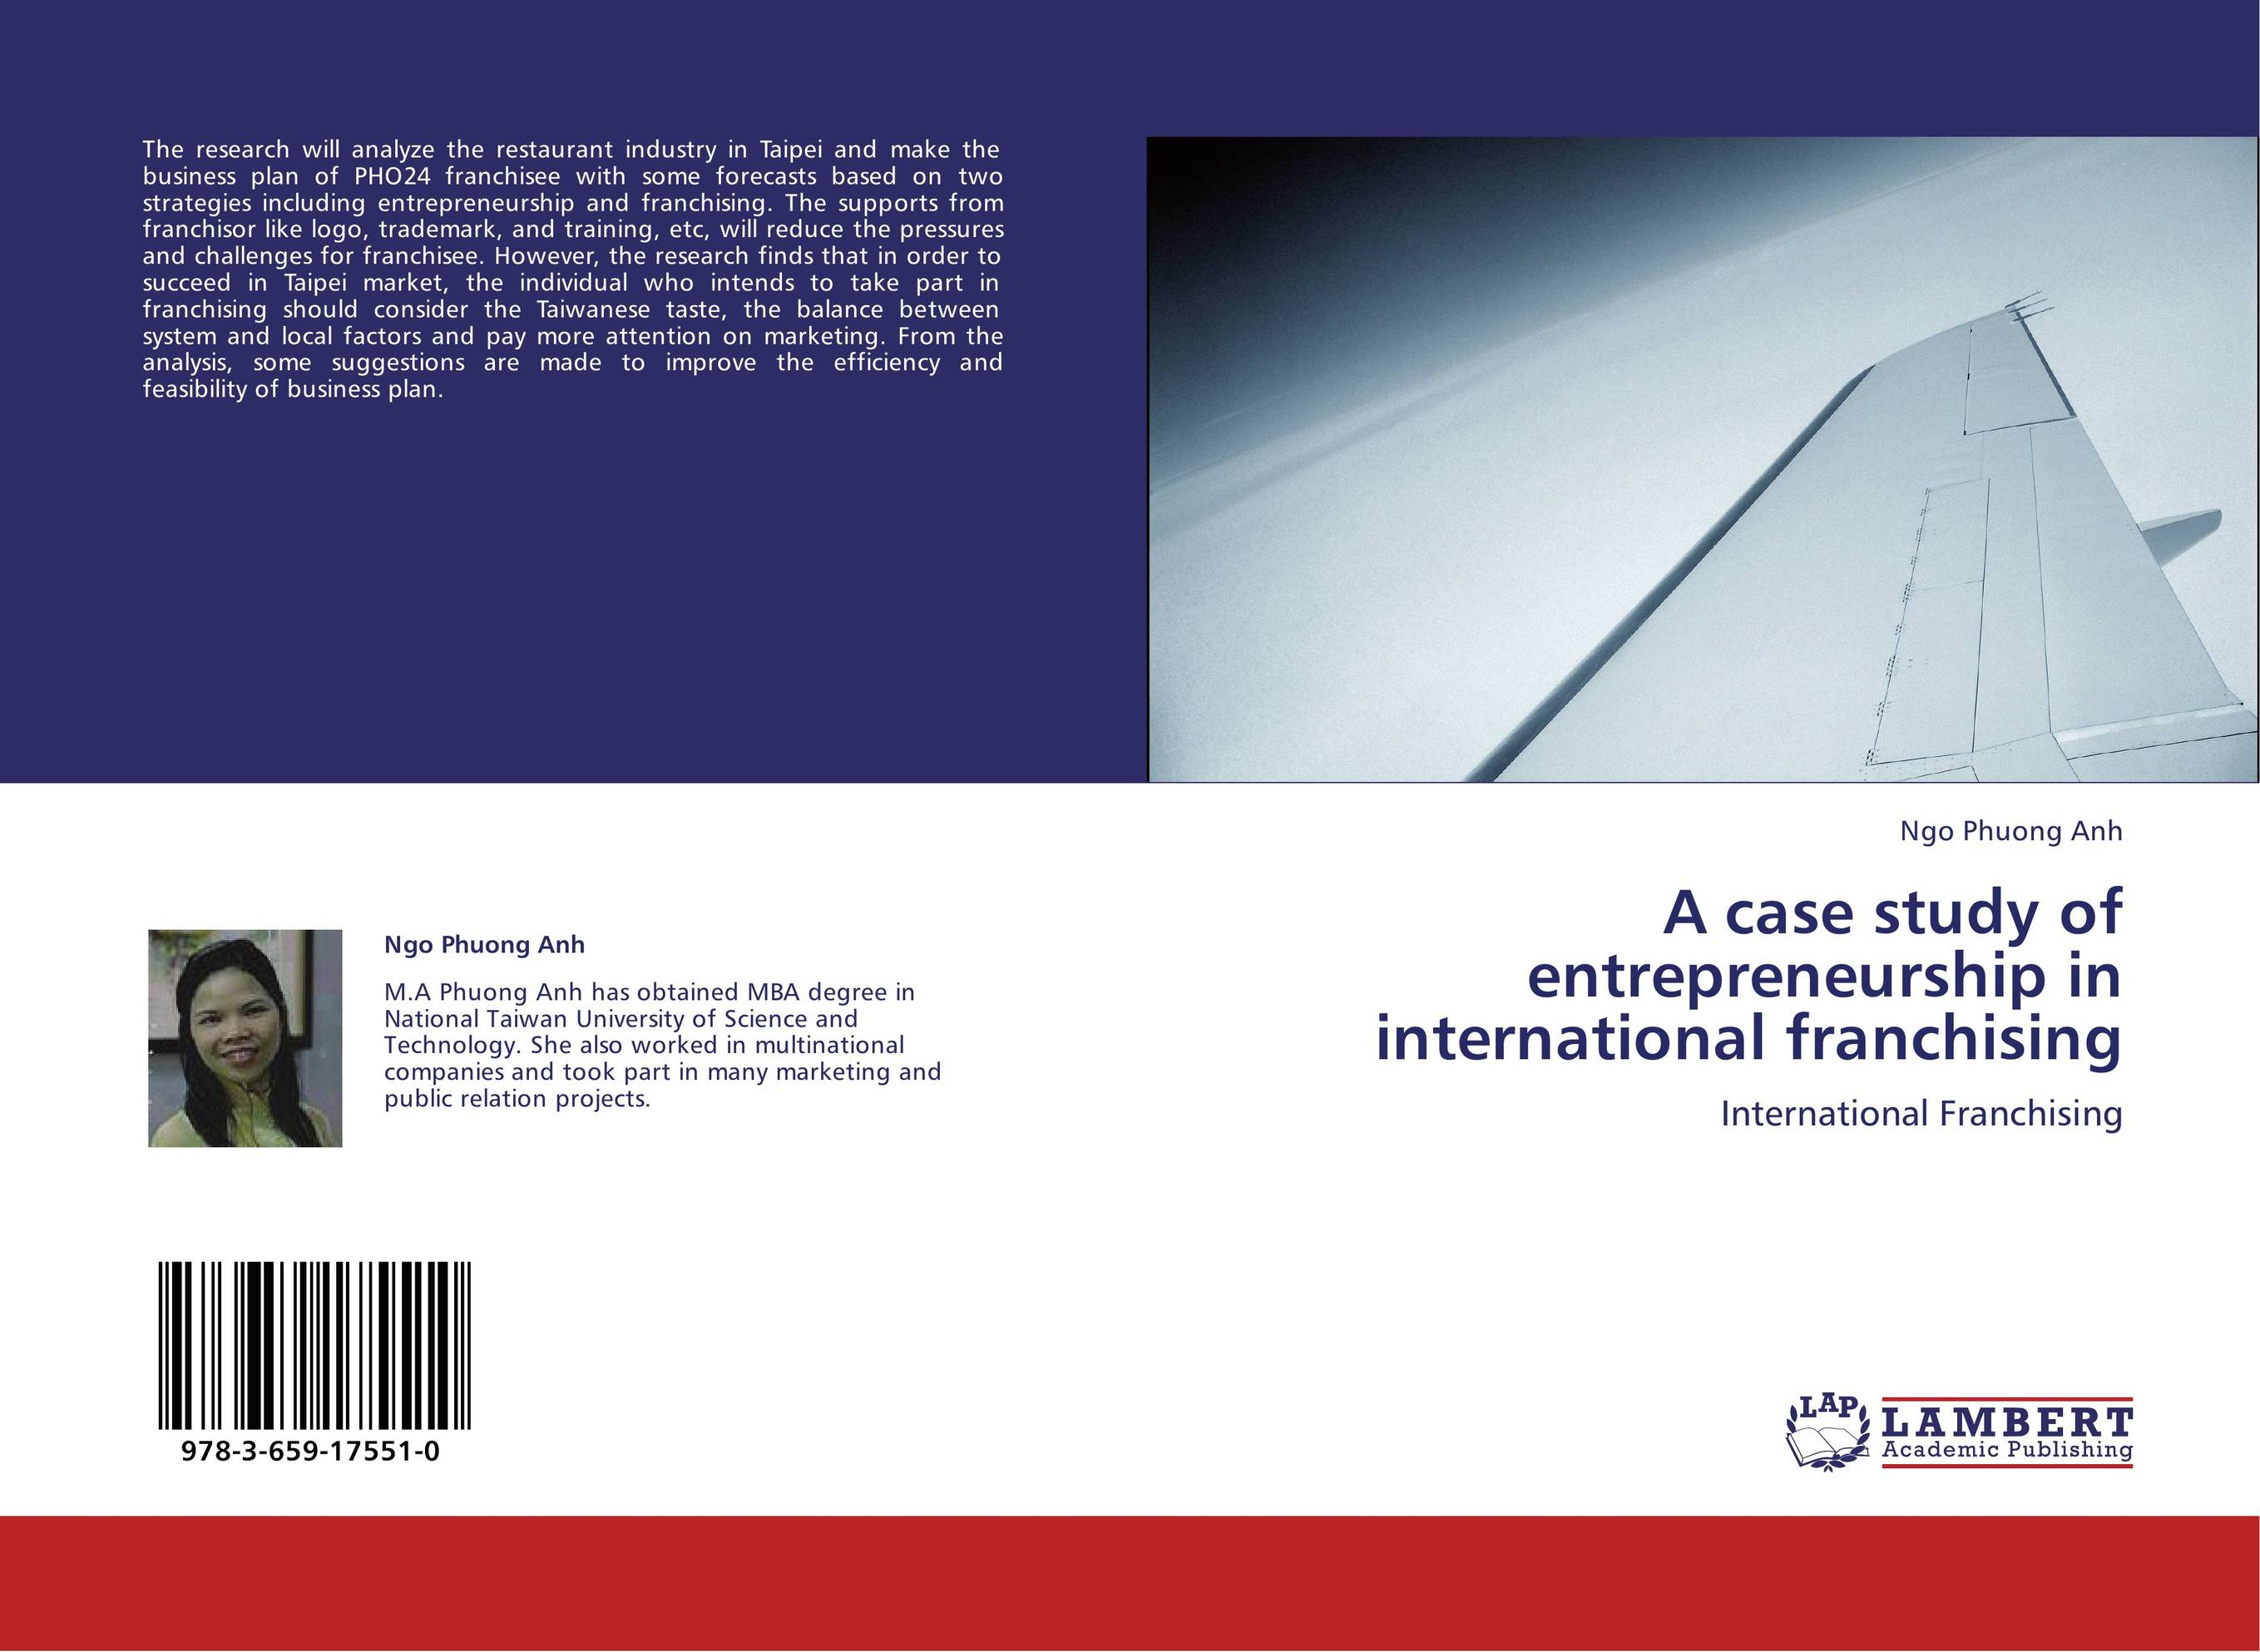 A case study of entrepreneurship in international franchising n giusti diffuse entrepreneurship and the very heart of made in italy for fashion and luxury goods